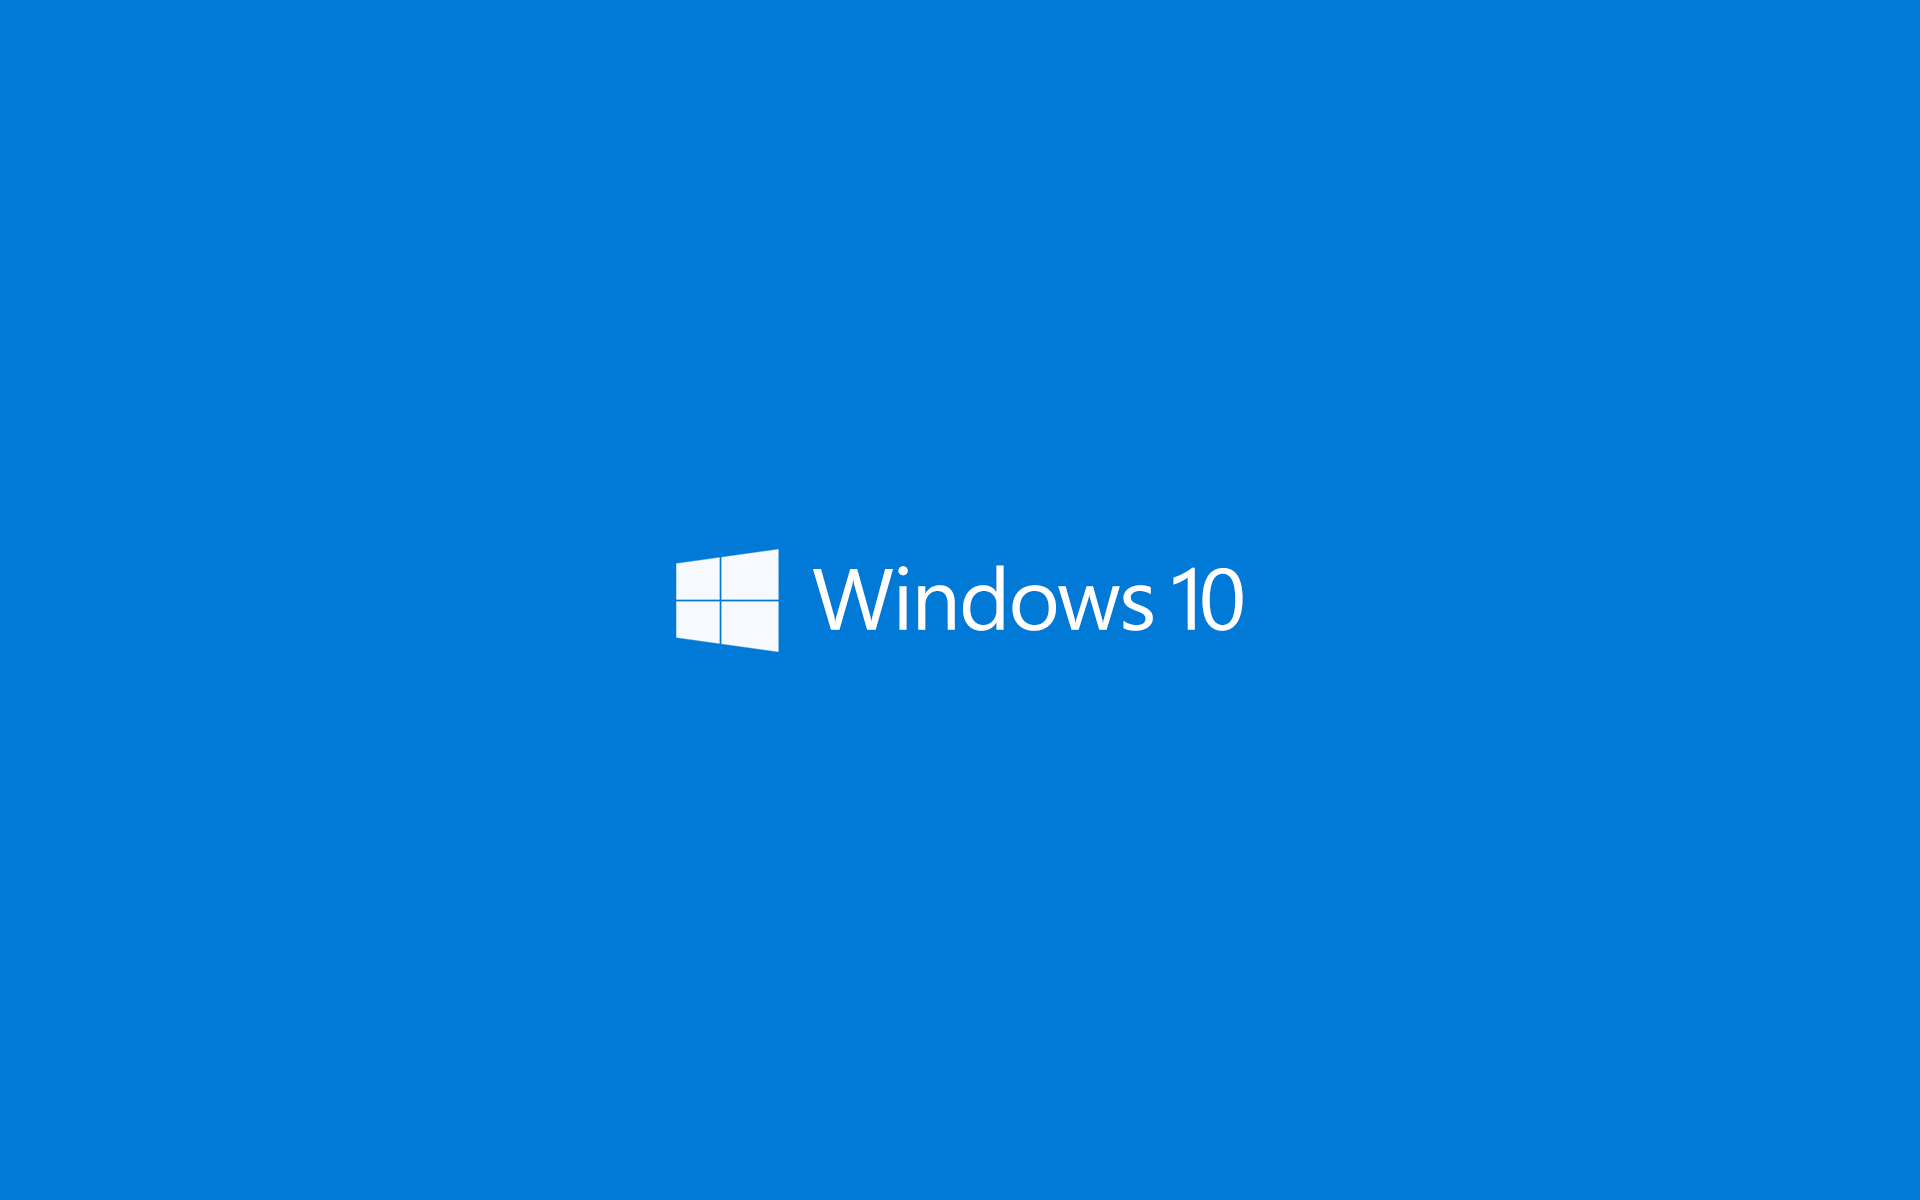 Windows 10 Original Wallpaper: Windows 10 Original 4, HD Computer, 4k Wallpapers, Images